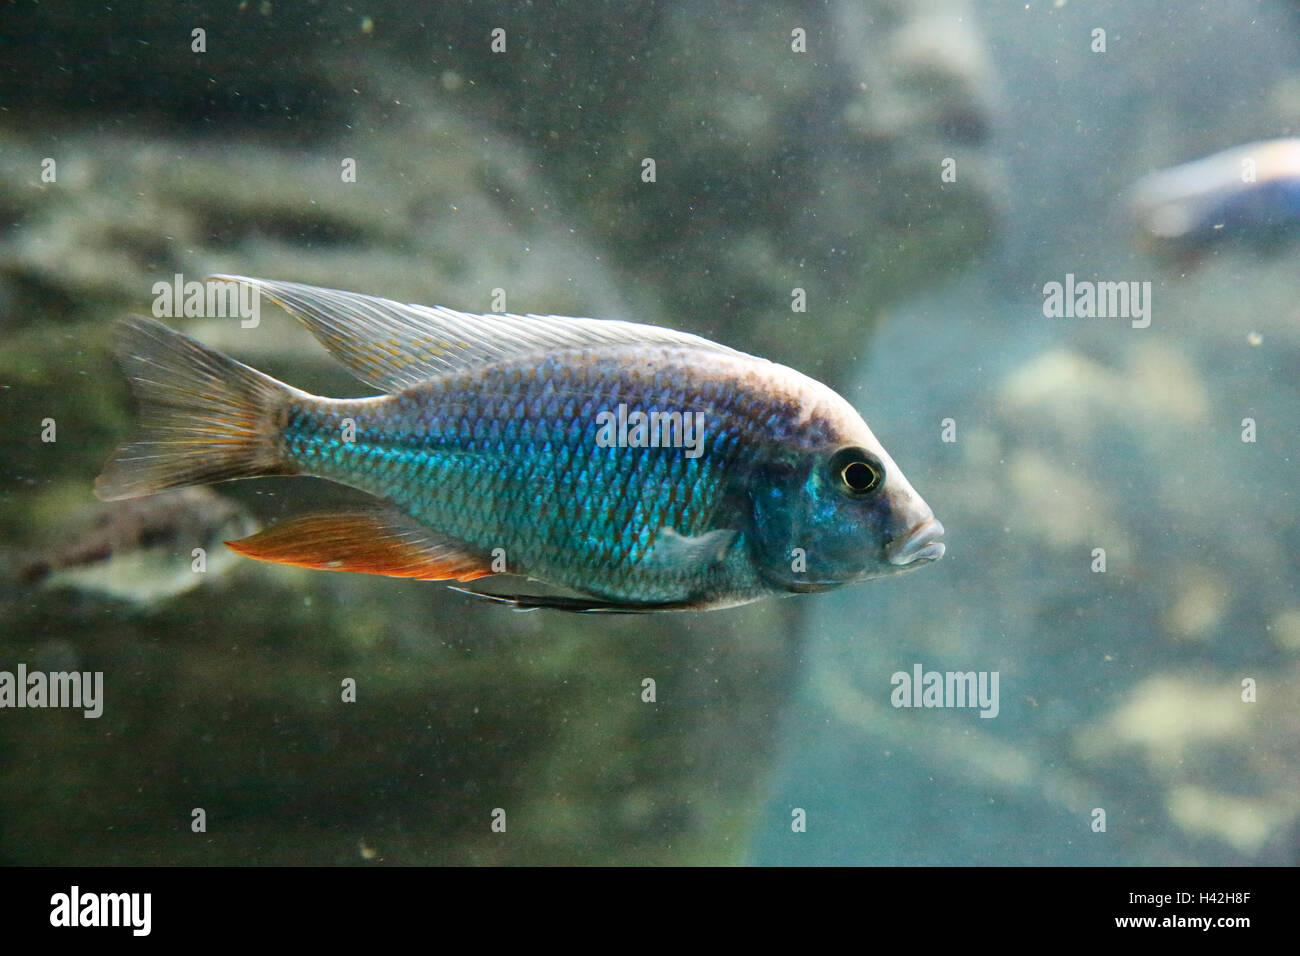 Spindle Hap Cichlid, Lake Malawi, Africa - Stock Image